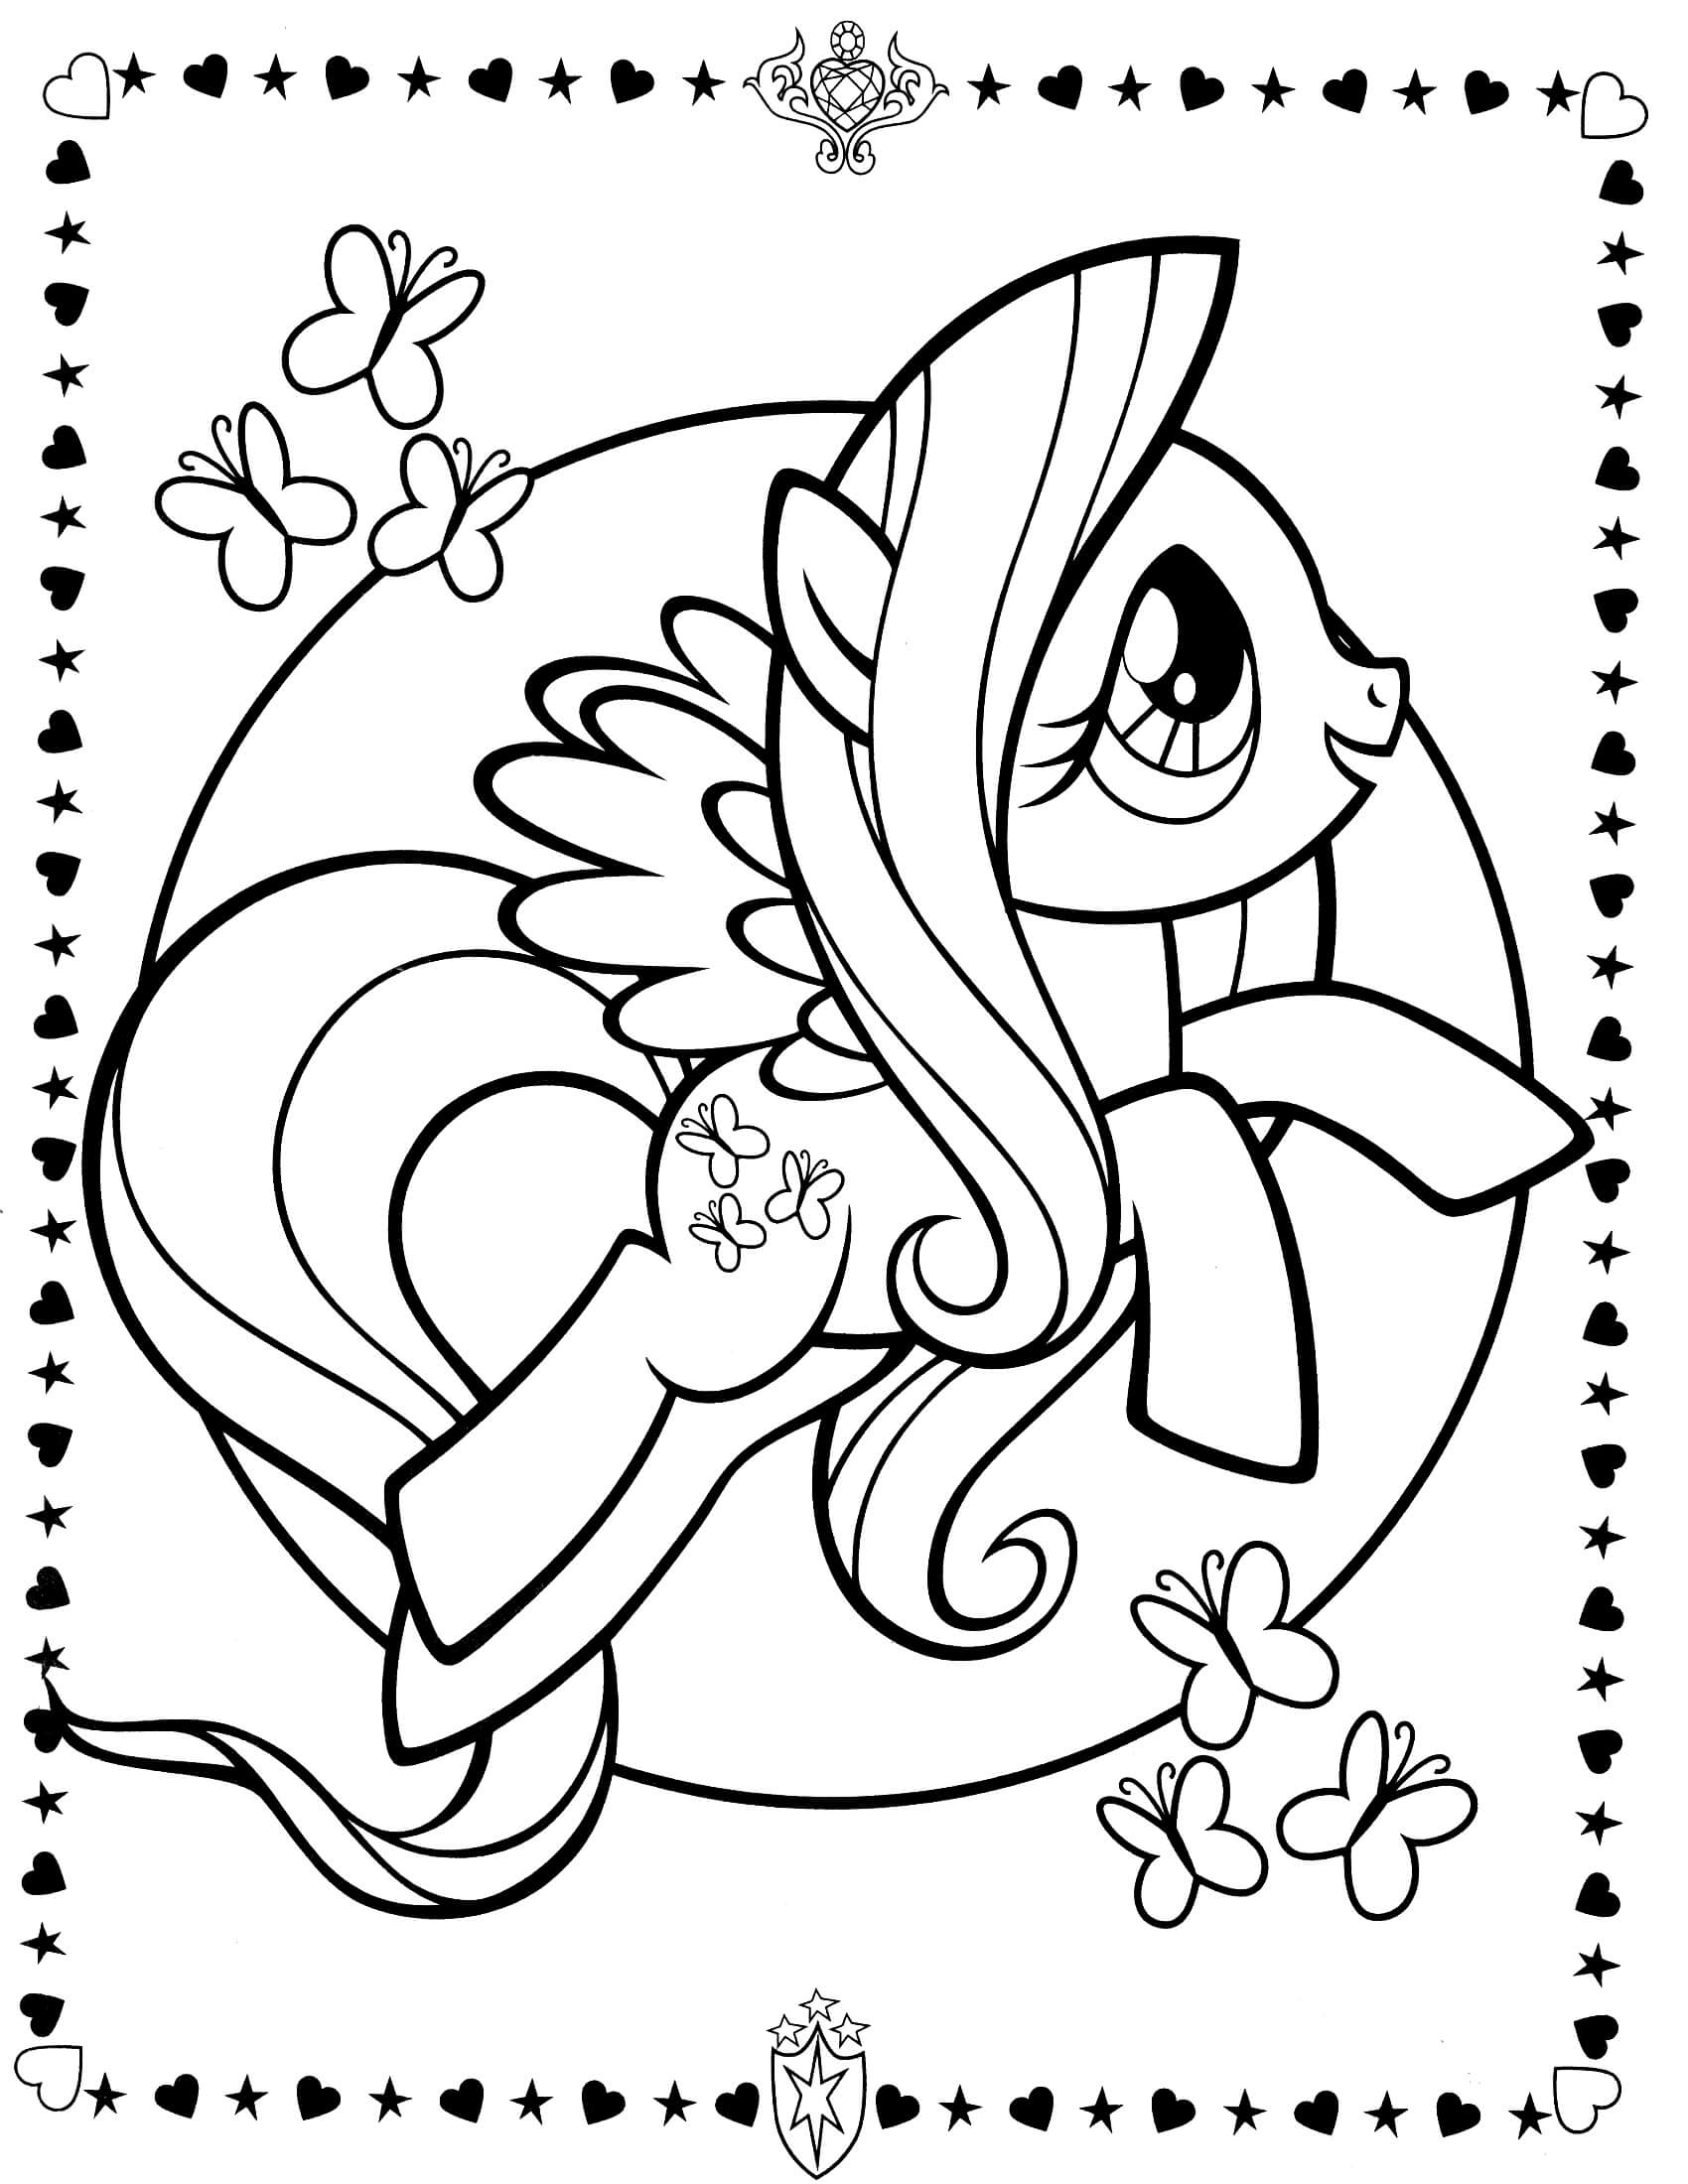 trolls printable coloring pages - my little pony coloring page 8